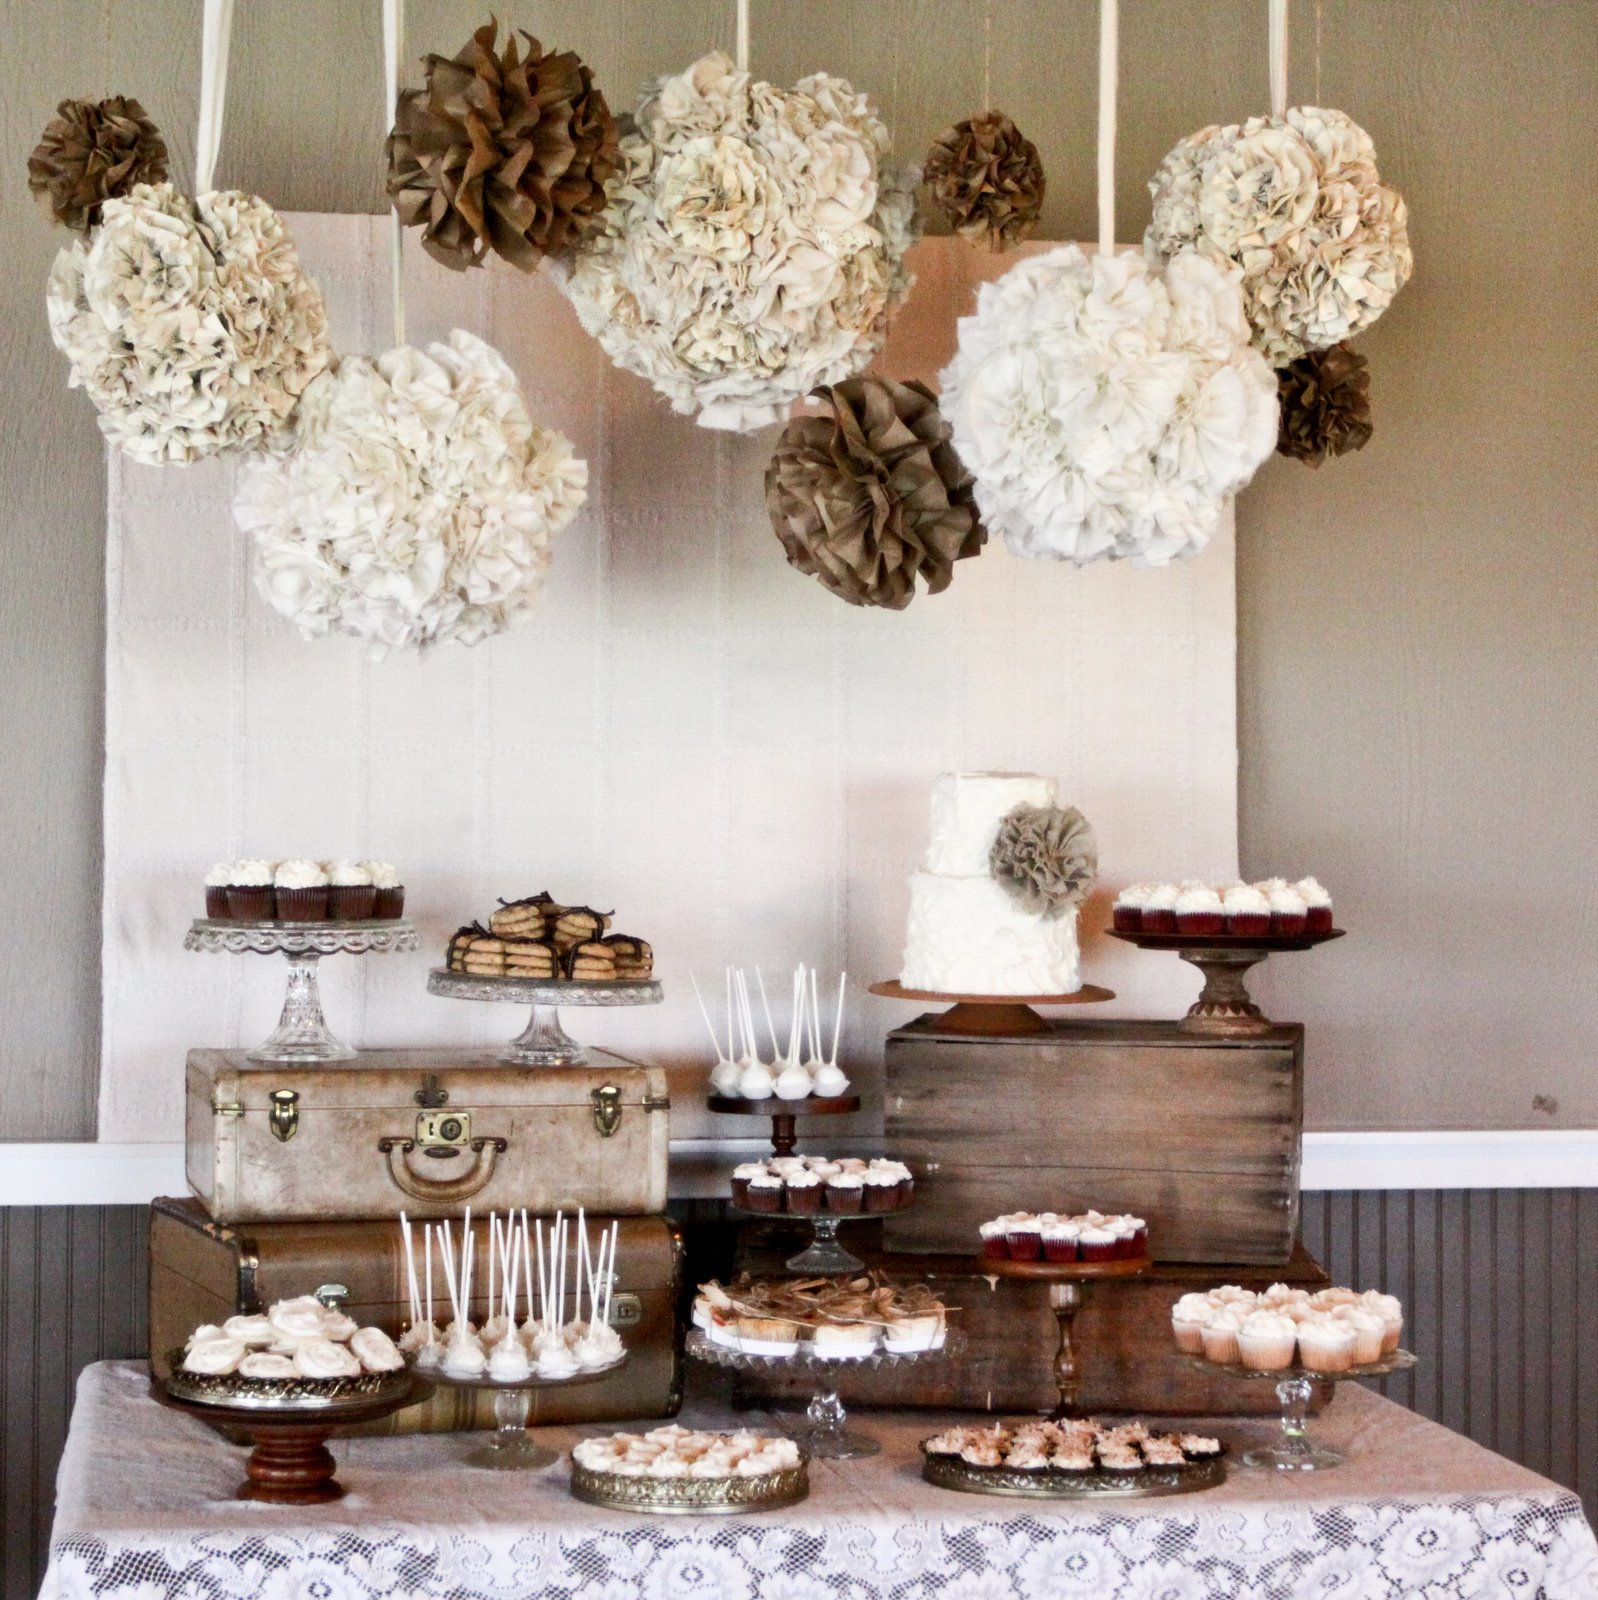 Organizitpartystyling Wedding Dessert Table Collection Part 2